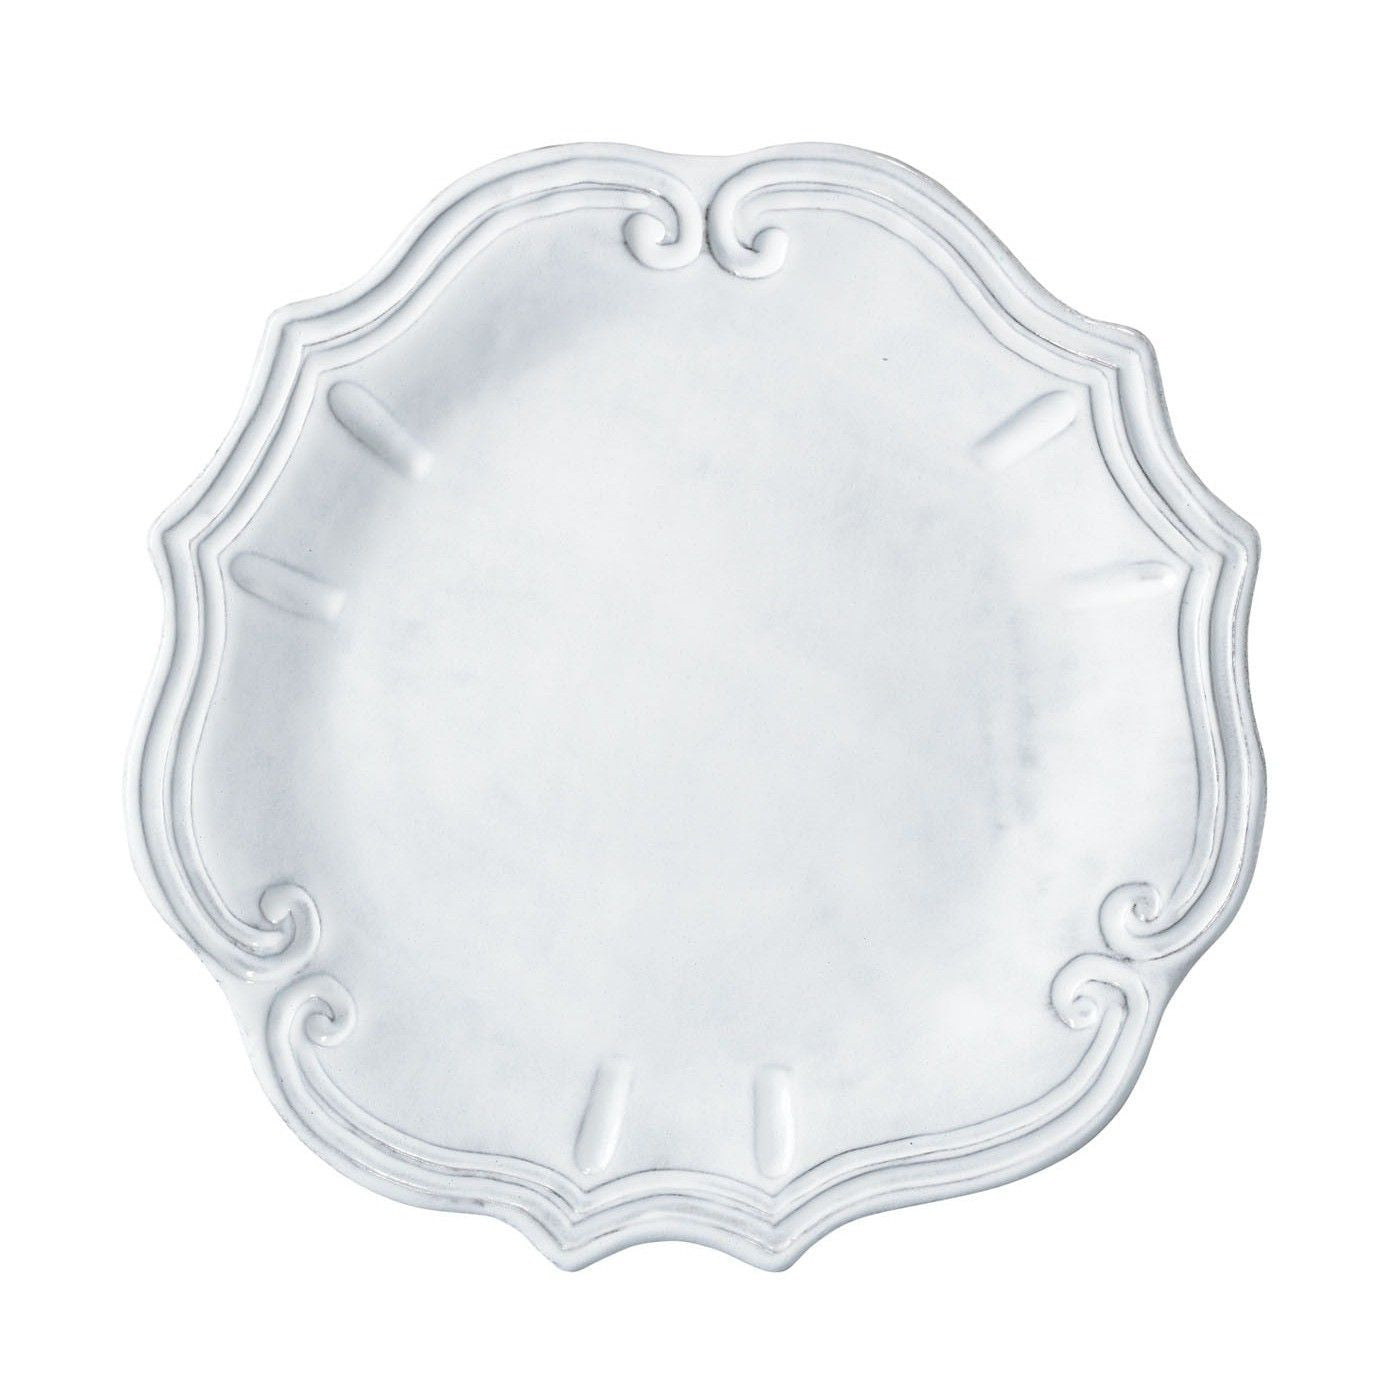 Incanto White Baroque American Dinner Plate